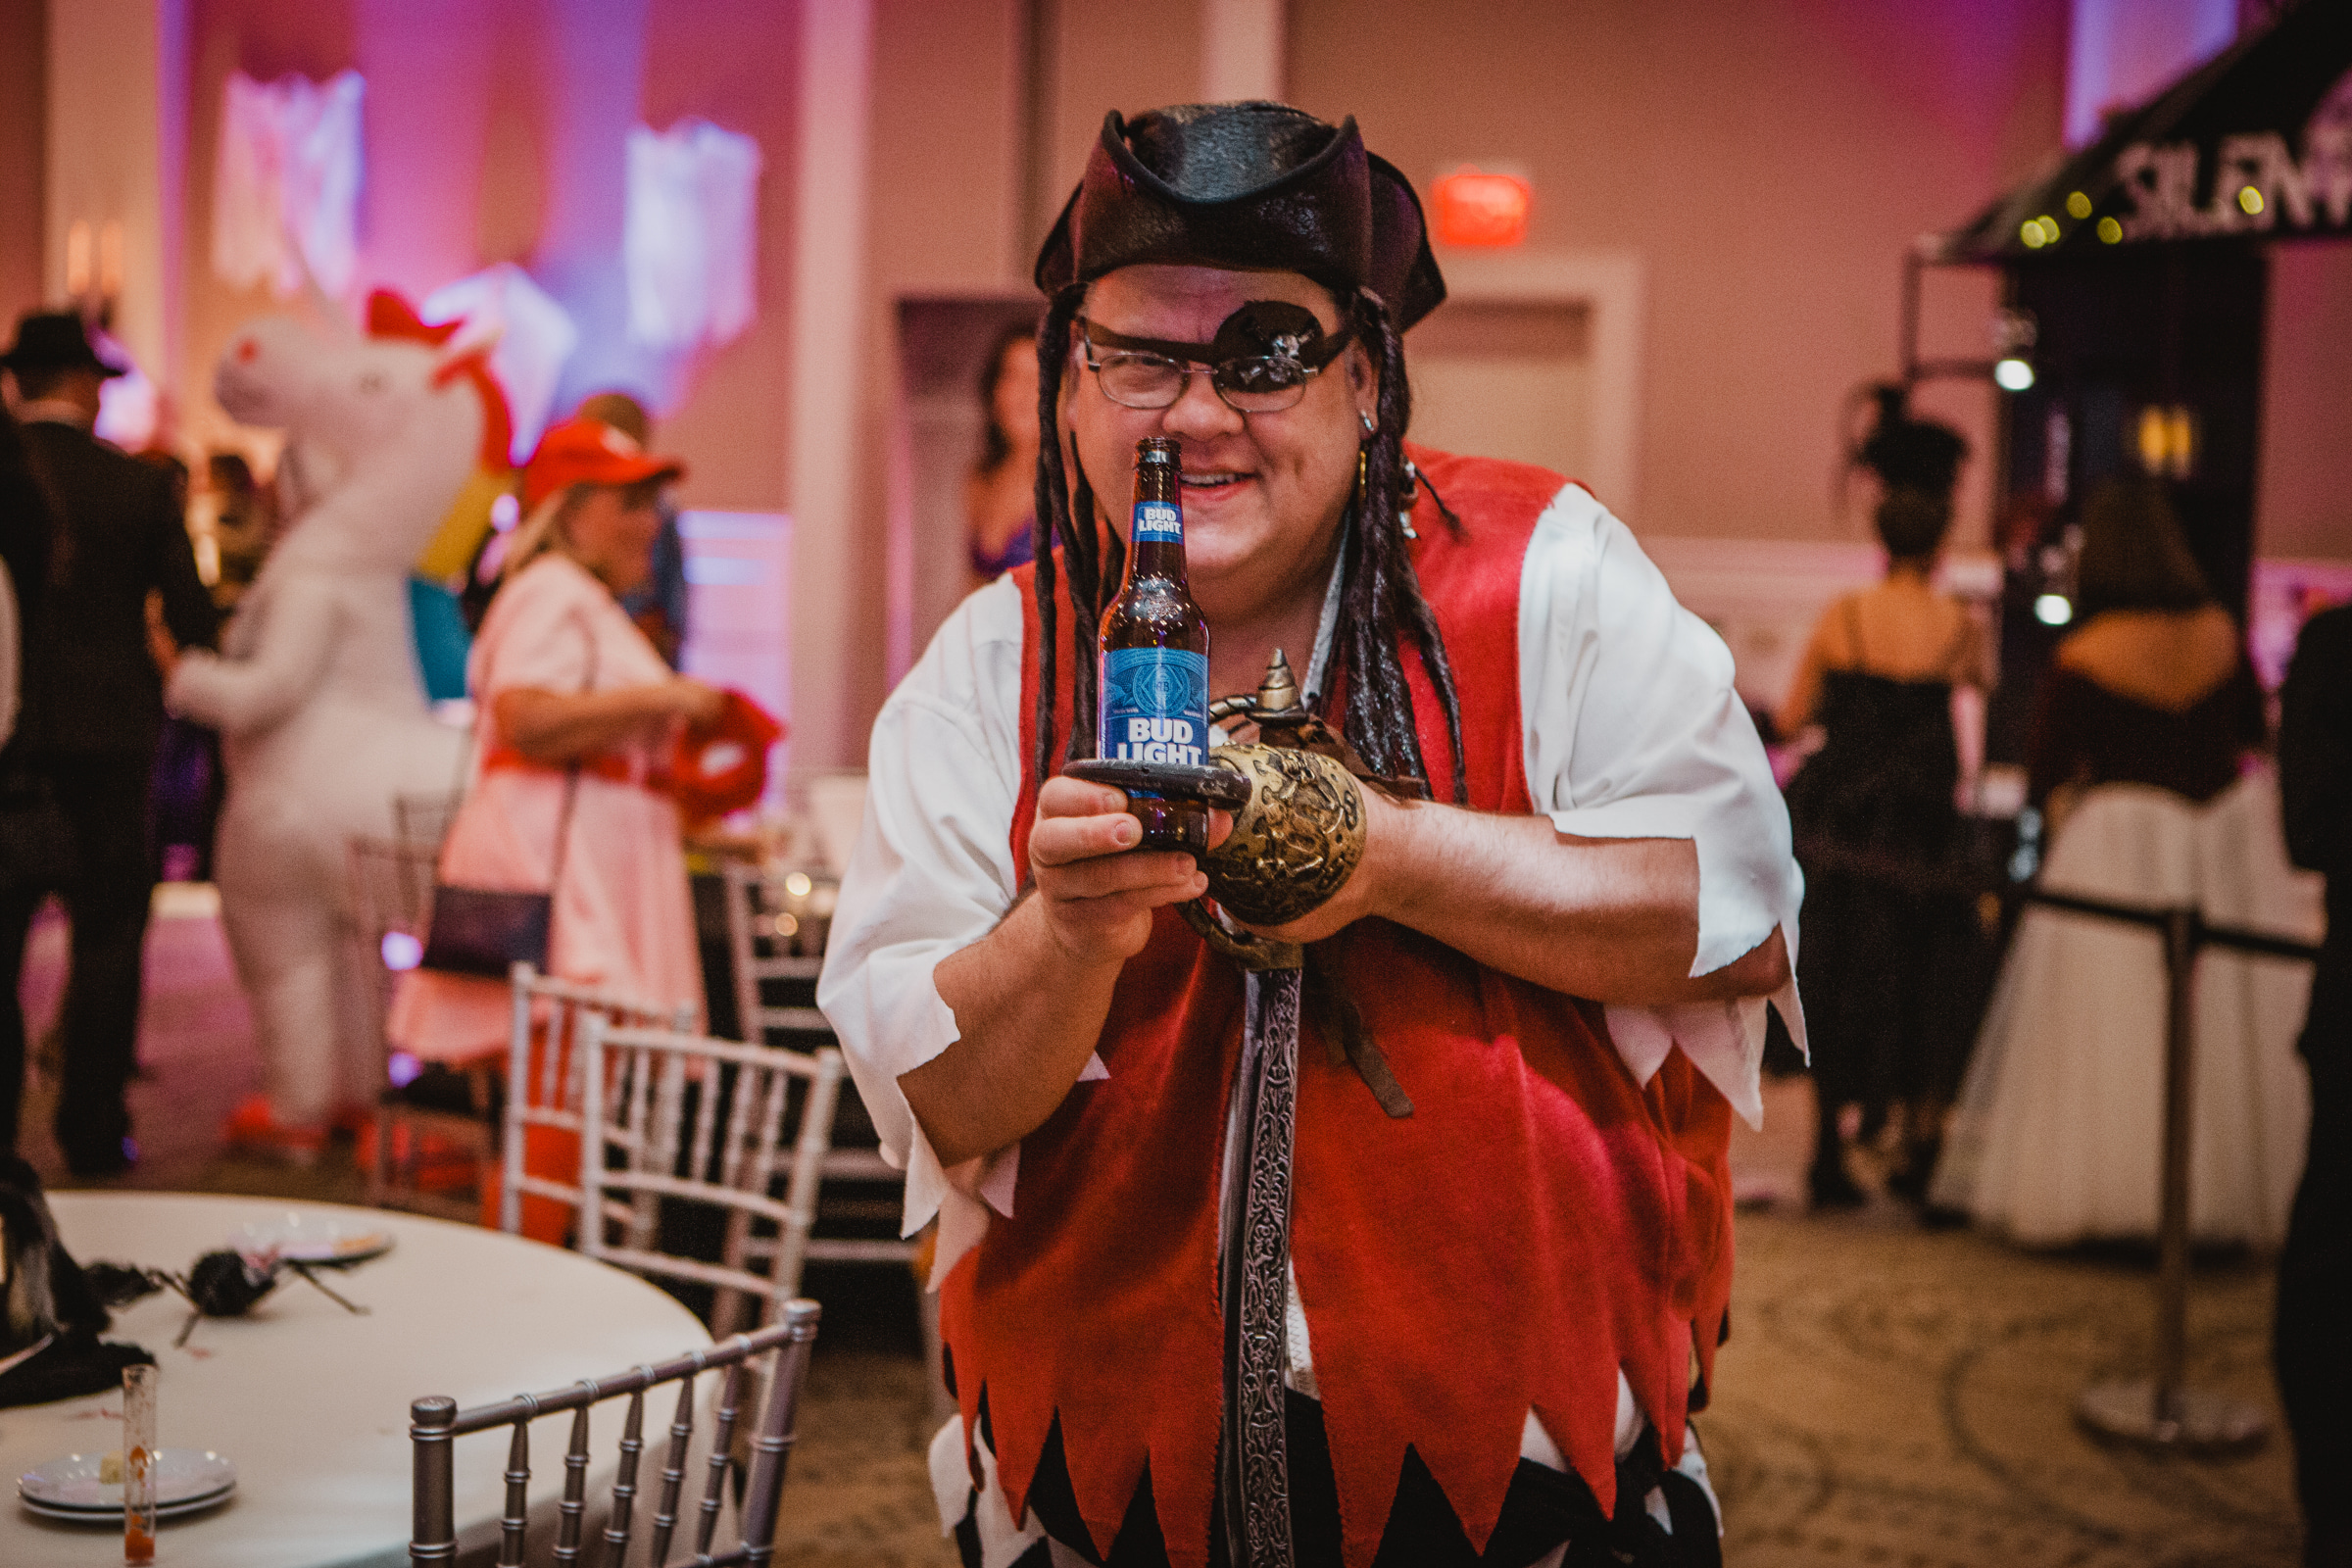 20181027_CostumesForACause_VVF_Event-8586.jpg